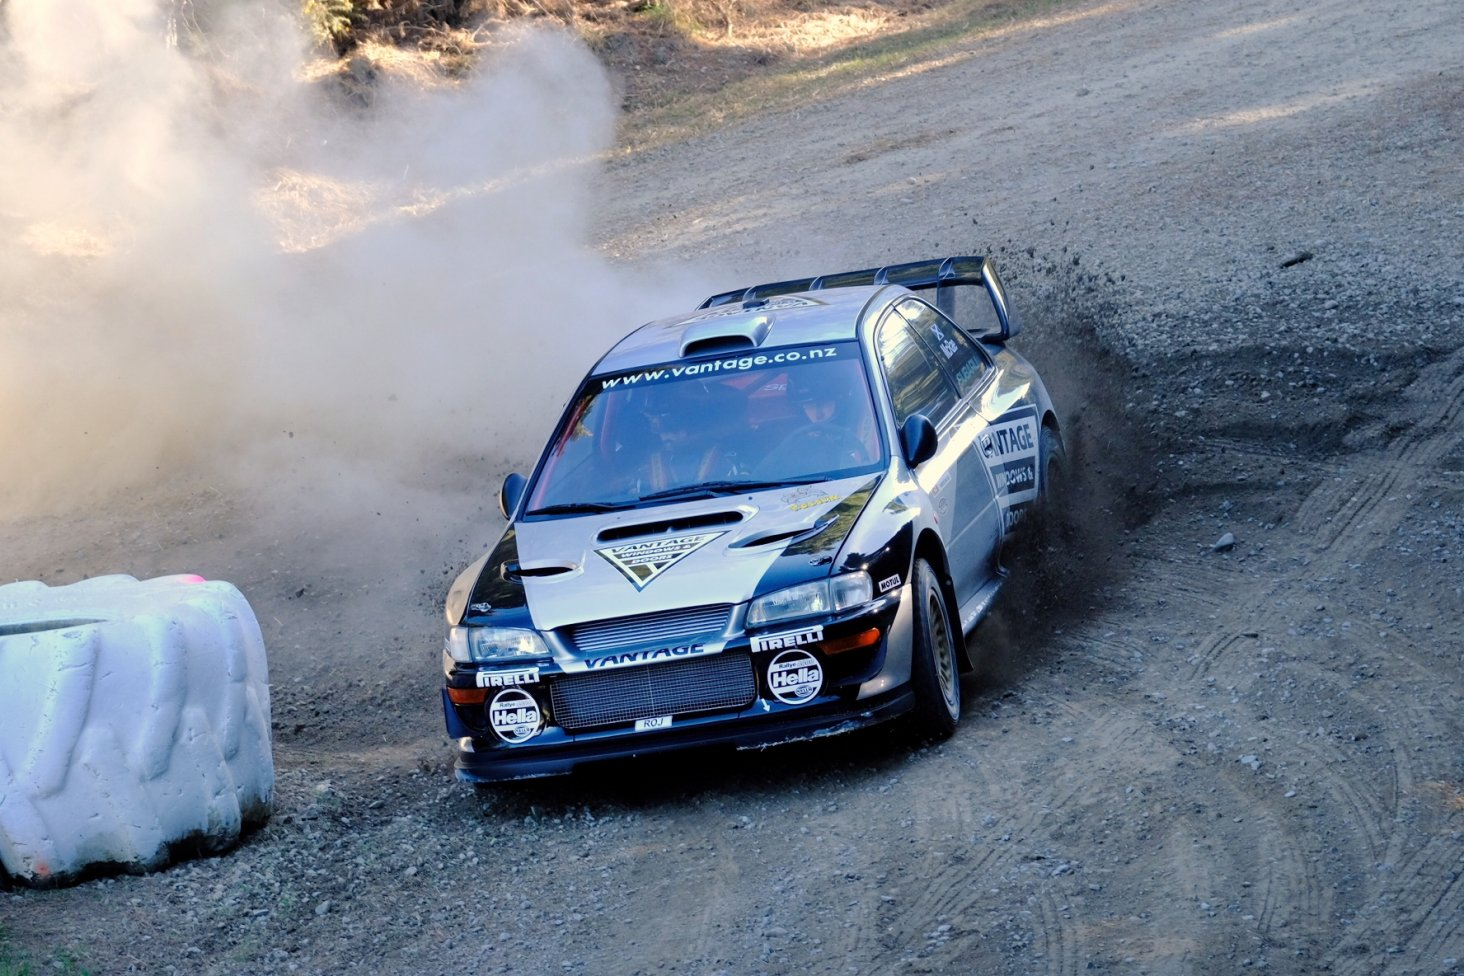 The Vantage Subaru WRC rounds the hairpin bend at the top of the course. PHOTO: GEOFF RIDDER.